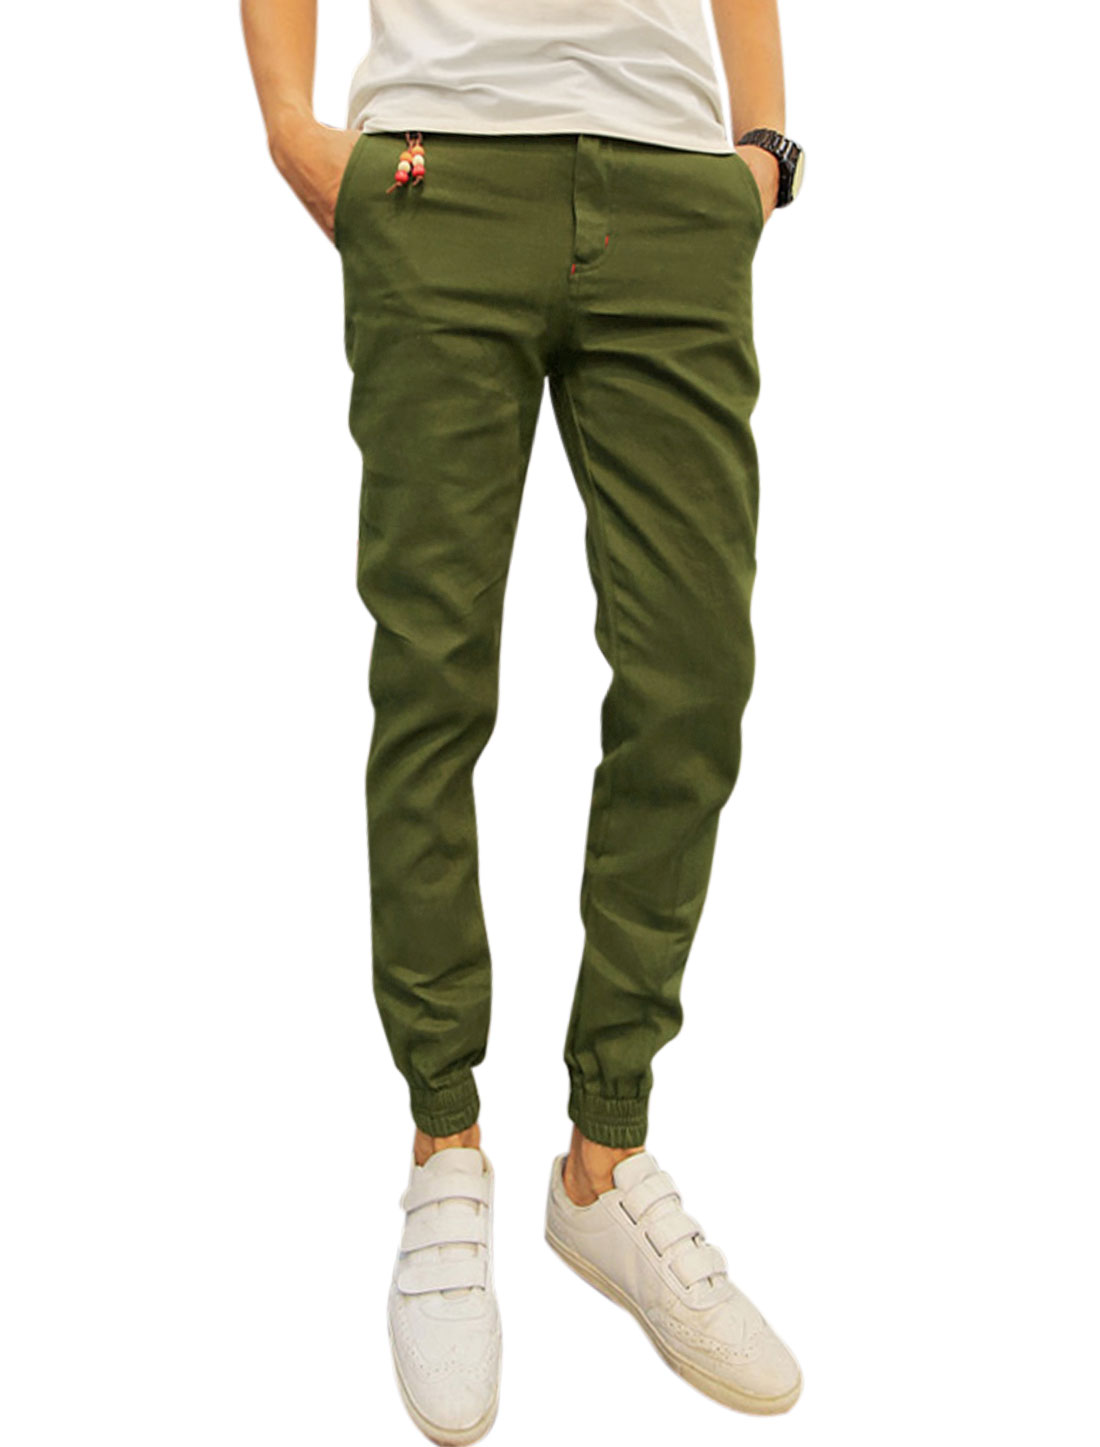 Men Mid Rise Pockets Elastic Cuffs Leisure Trousers Army Green W30